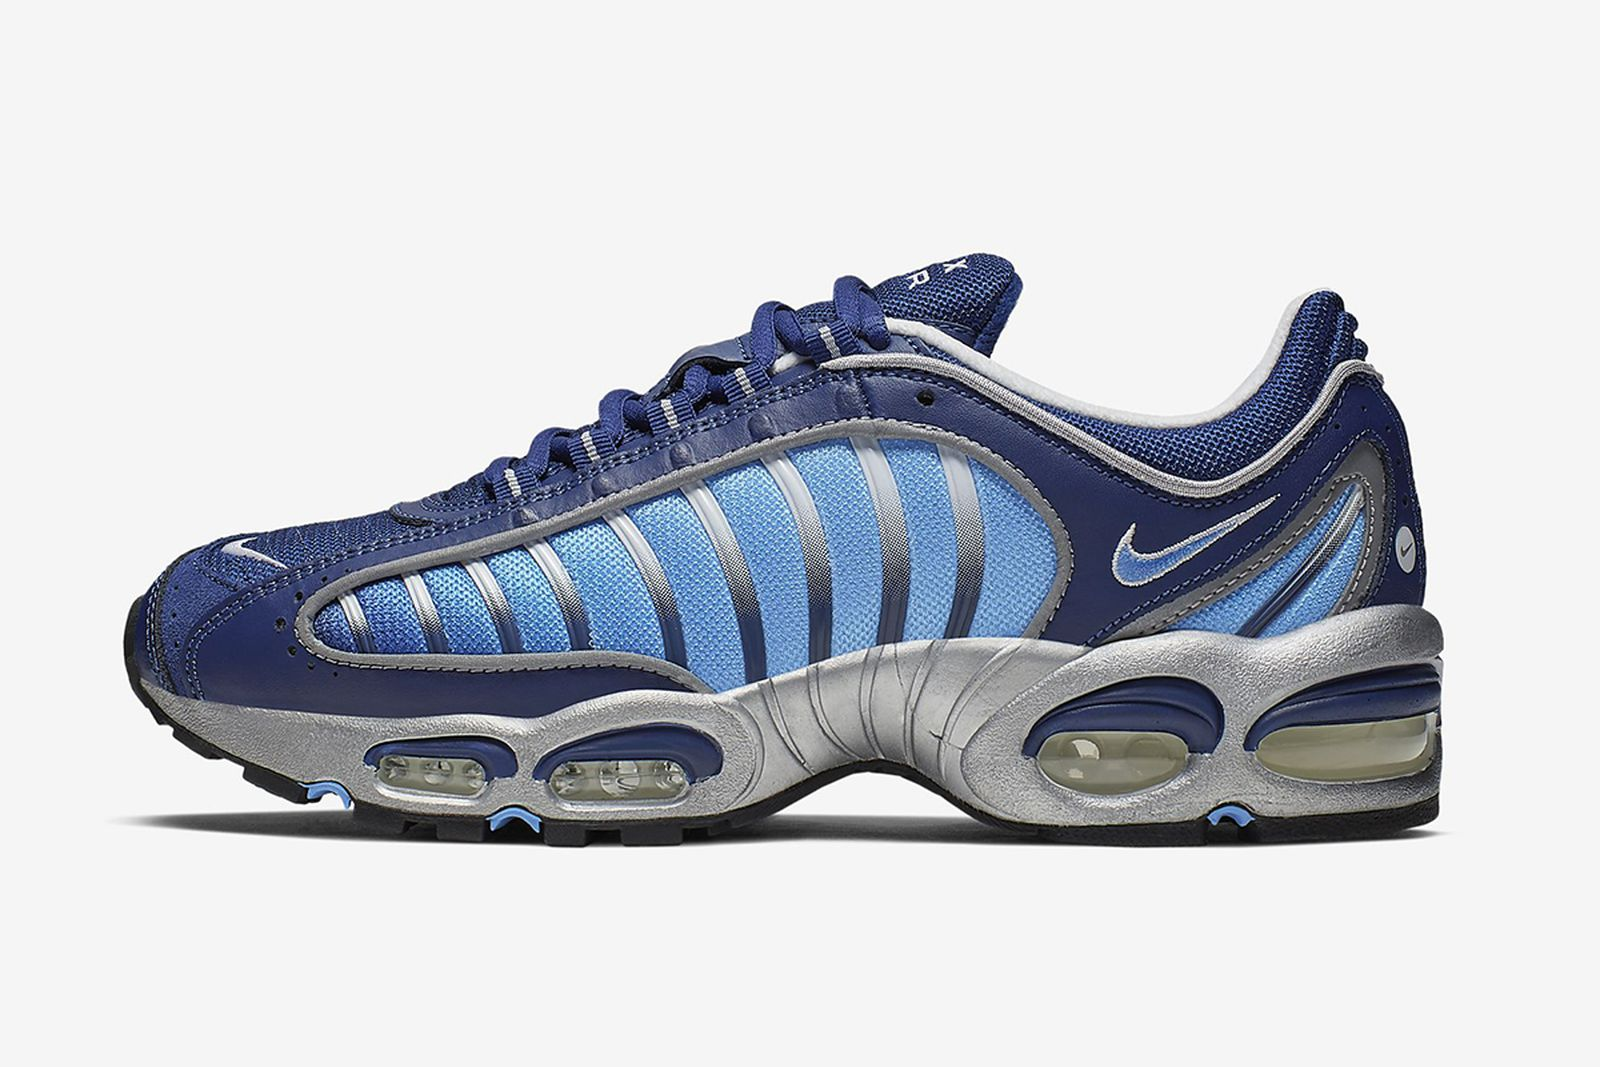 10 Nike Air Max Sneakers to Add to Your Collection